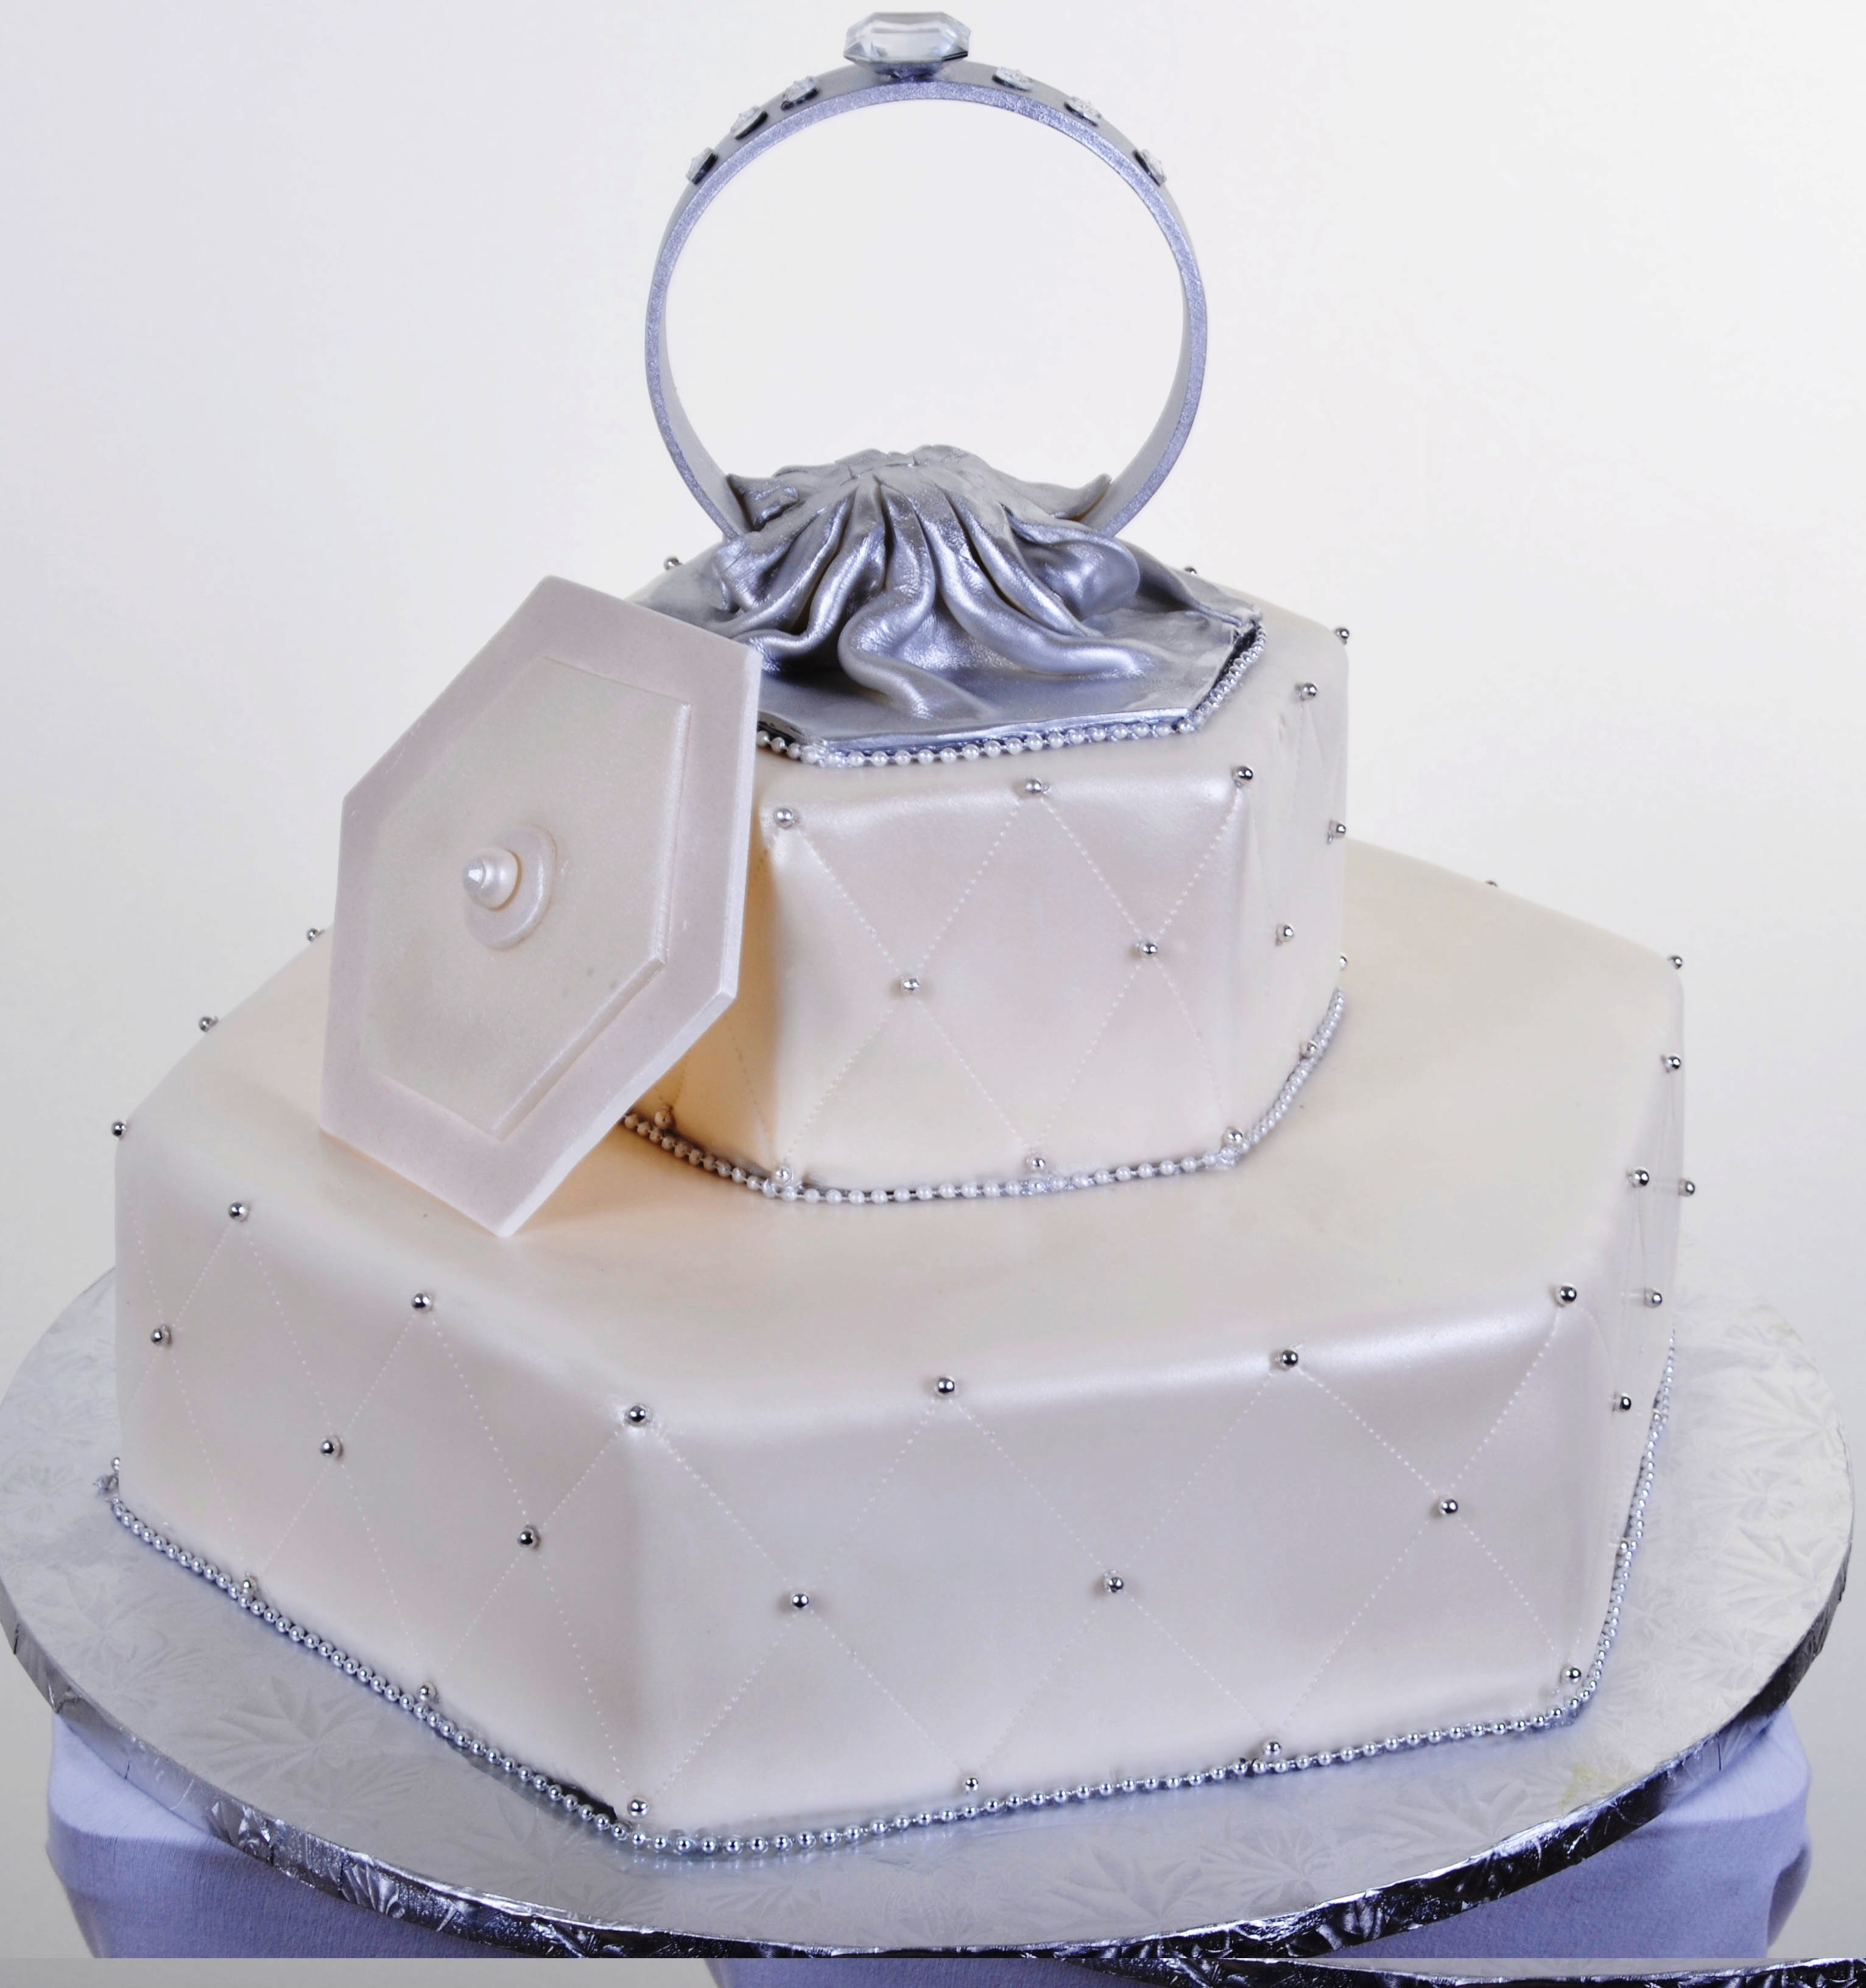 Pastry Palace Las Vegas - Cake #924 - Put A Ring On It